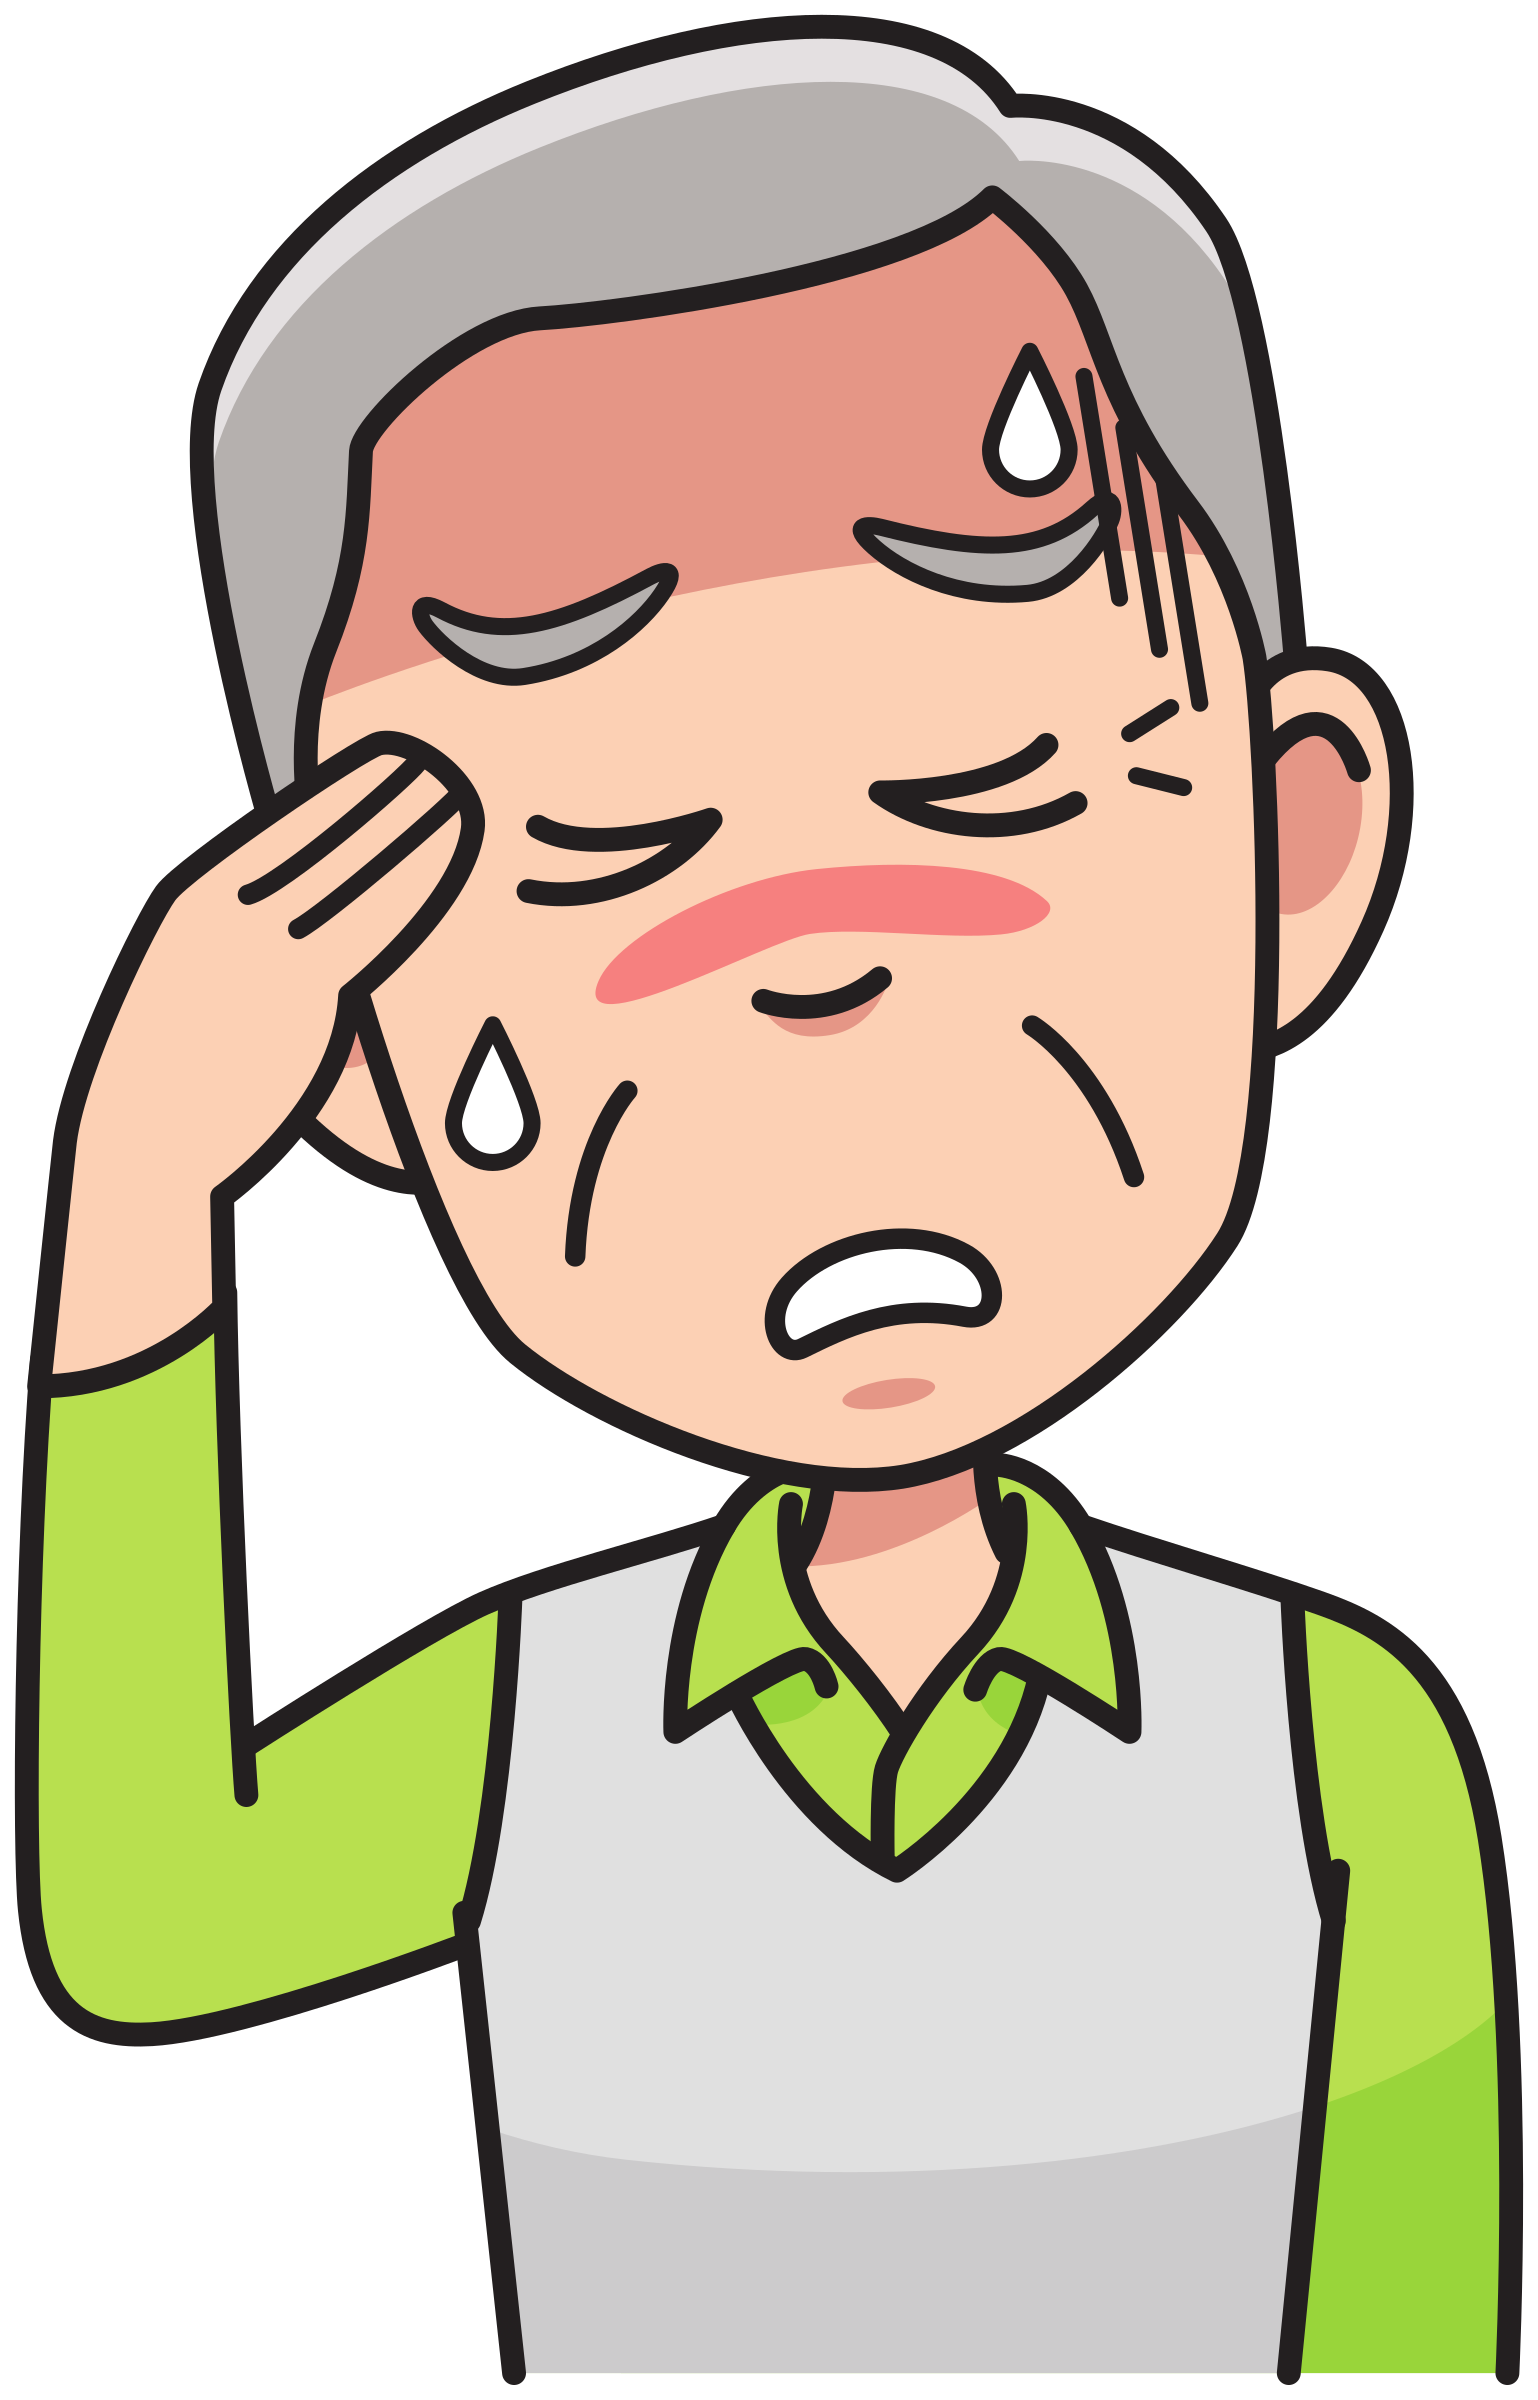 Hurt clipart head hurts. Headache free download best